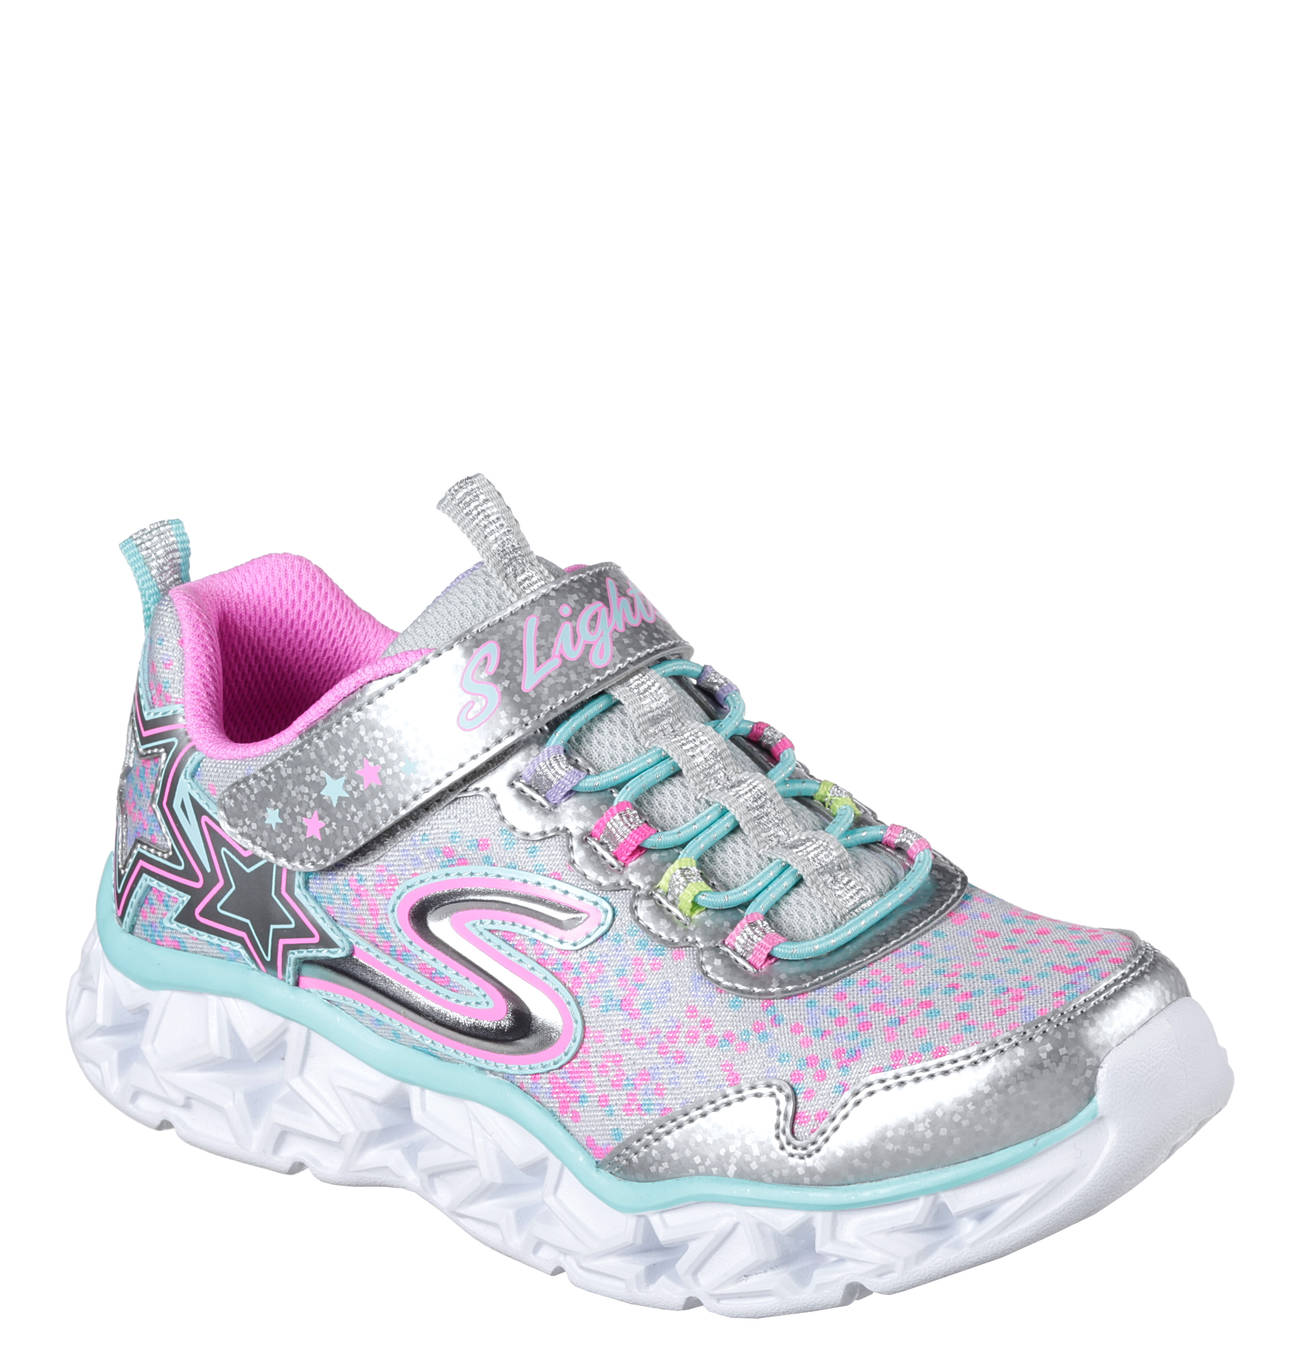 Skechers Light Up Shoes With On Off Switch For Sale 2019